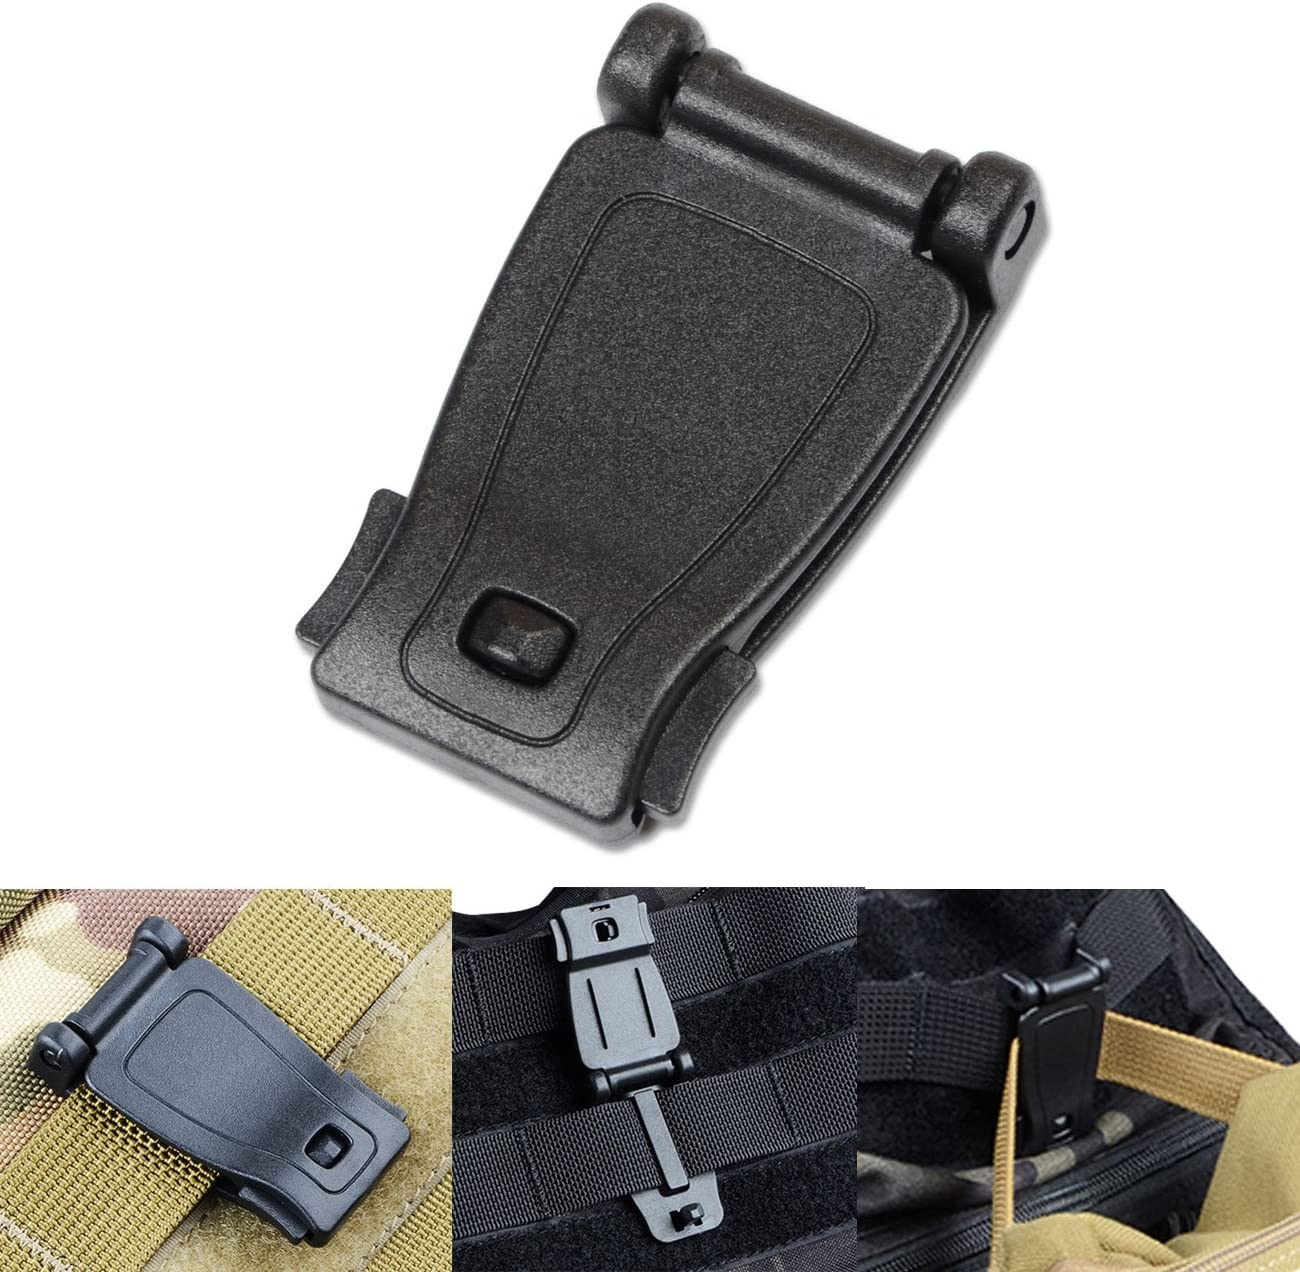 Backpack DYZD Multipurpose Molle Clip Molle Strap Attachments Tool Web Dominator Buckle for Tactical Bag